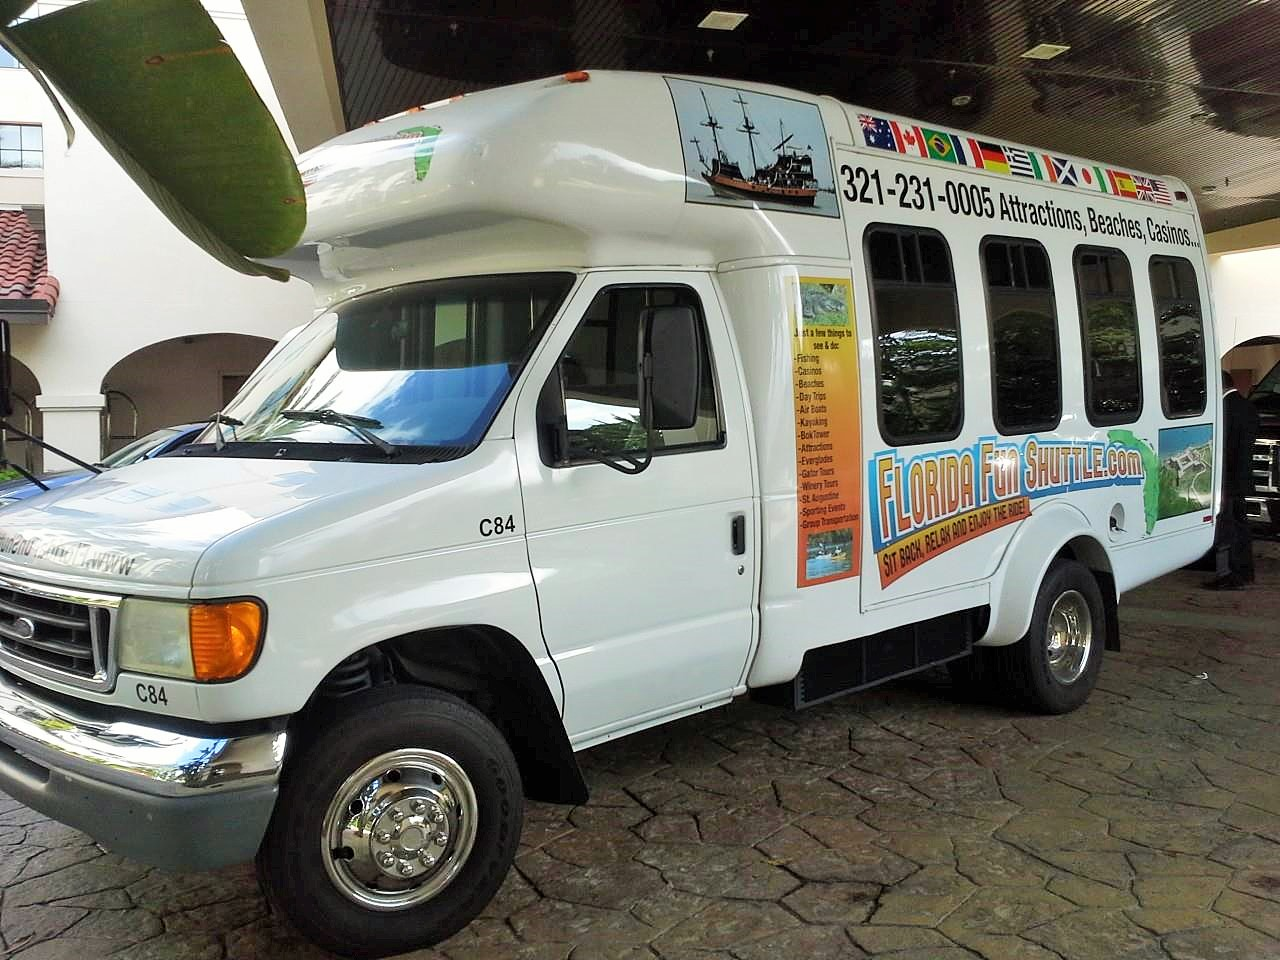 The Florida Fun Shuttle will customize a tour through Seminole County.